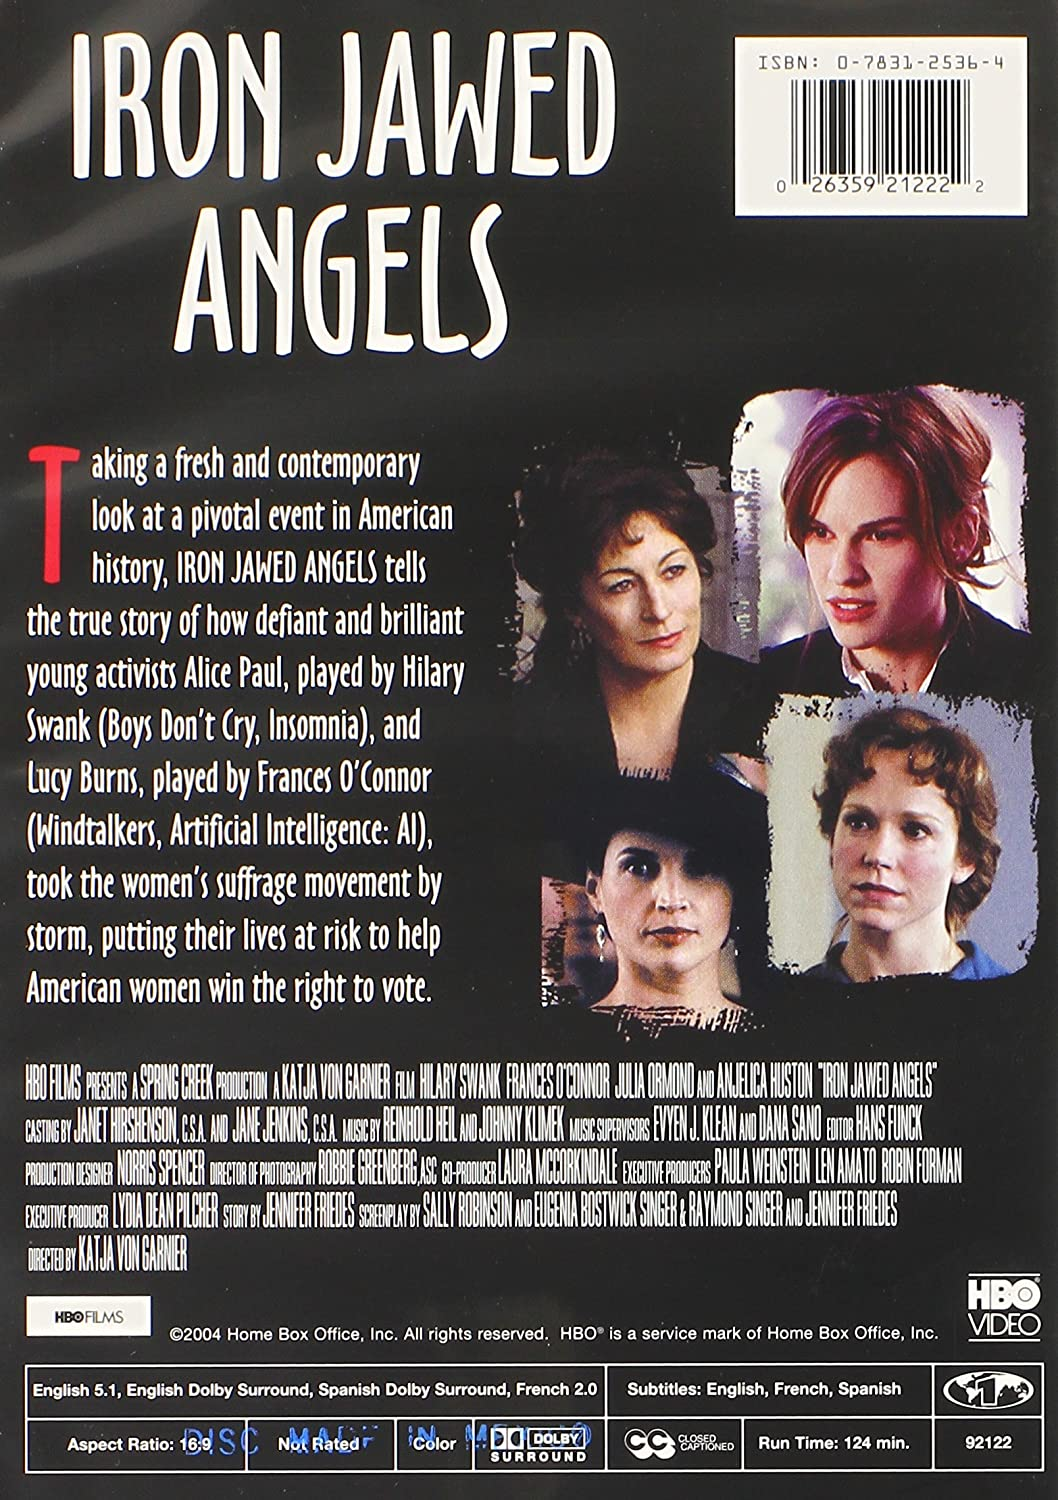 iron jawed angels essay iron jawed angels essay jawed angels dvd  com iron jawed angels hilary swank s o connor com iron jawed angels hilary swank s o connor jawed angels essay